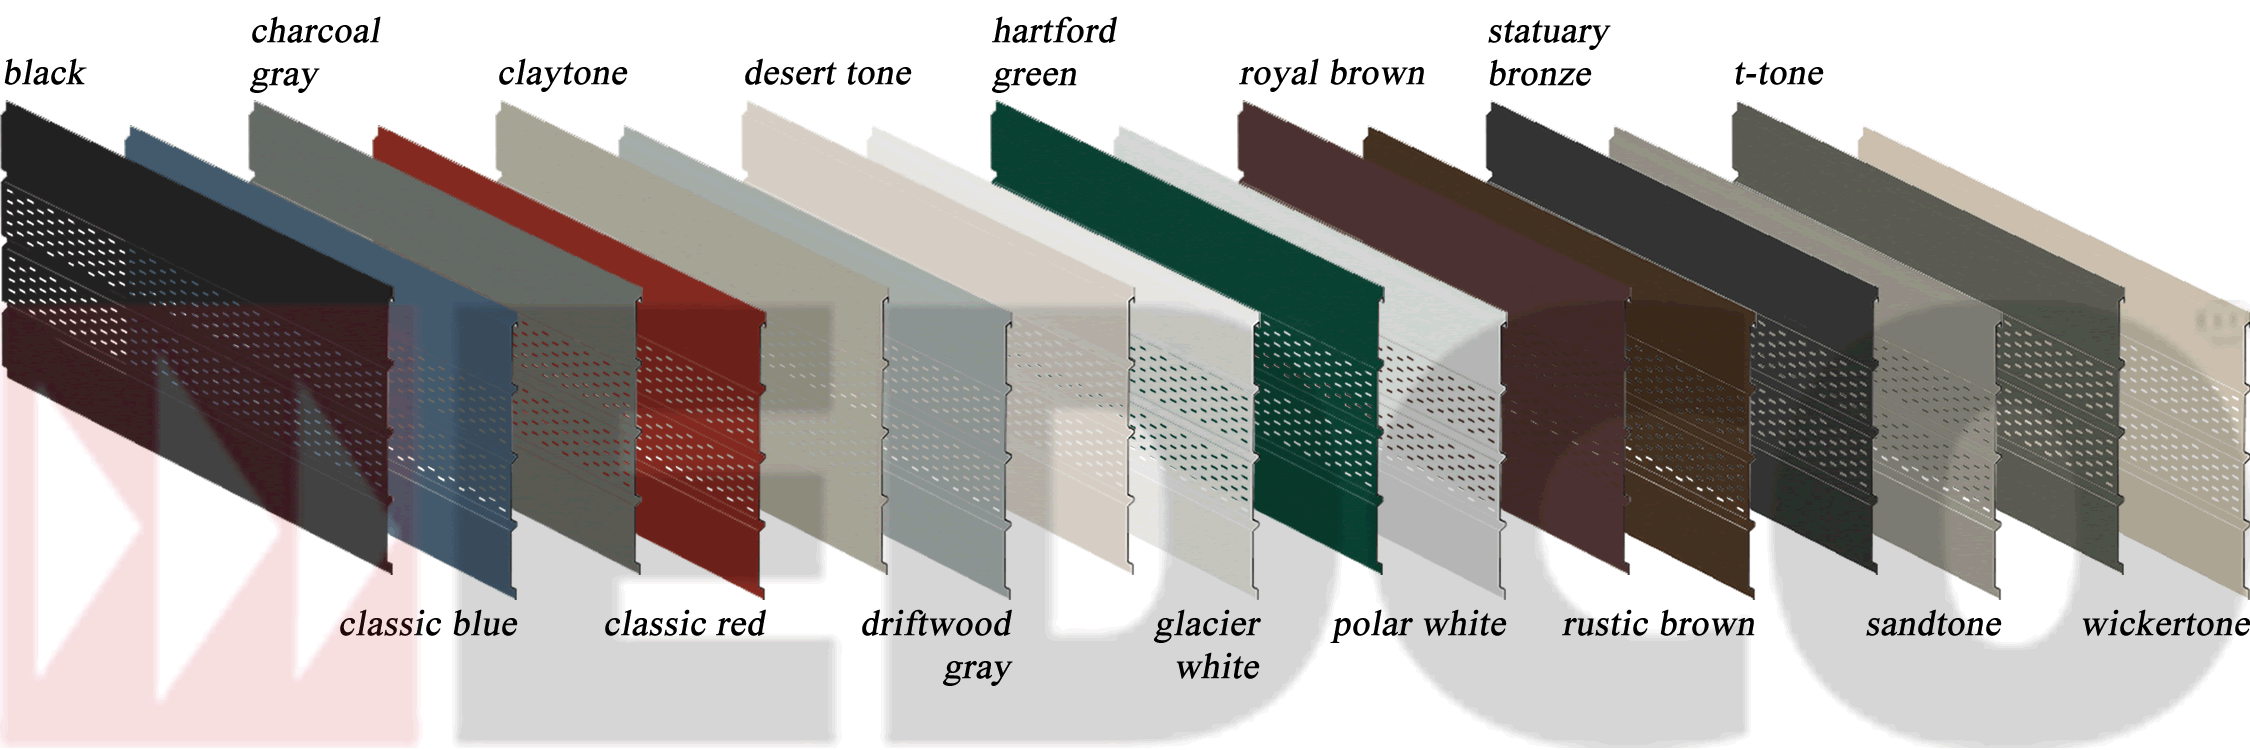 edco center vented soffit color swatches